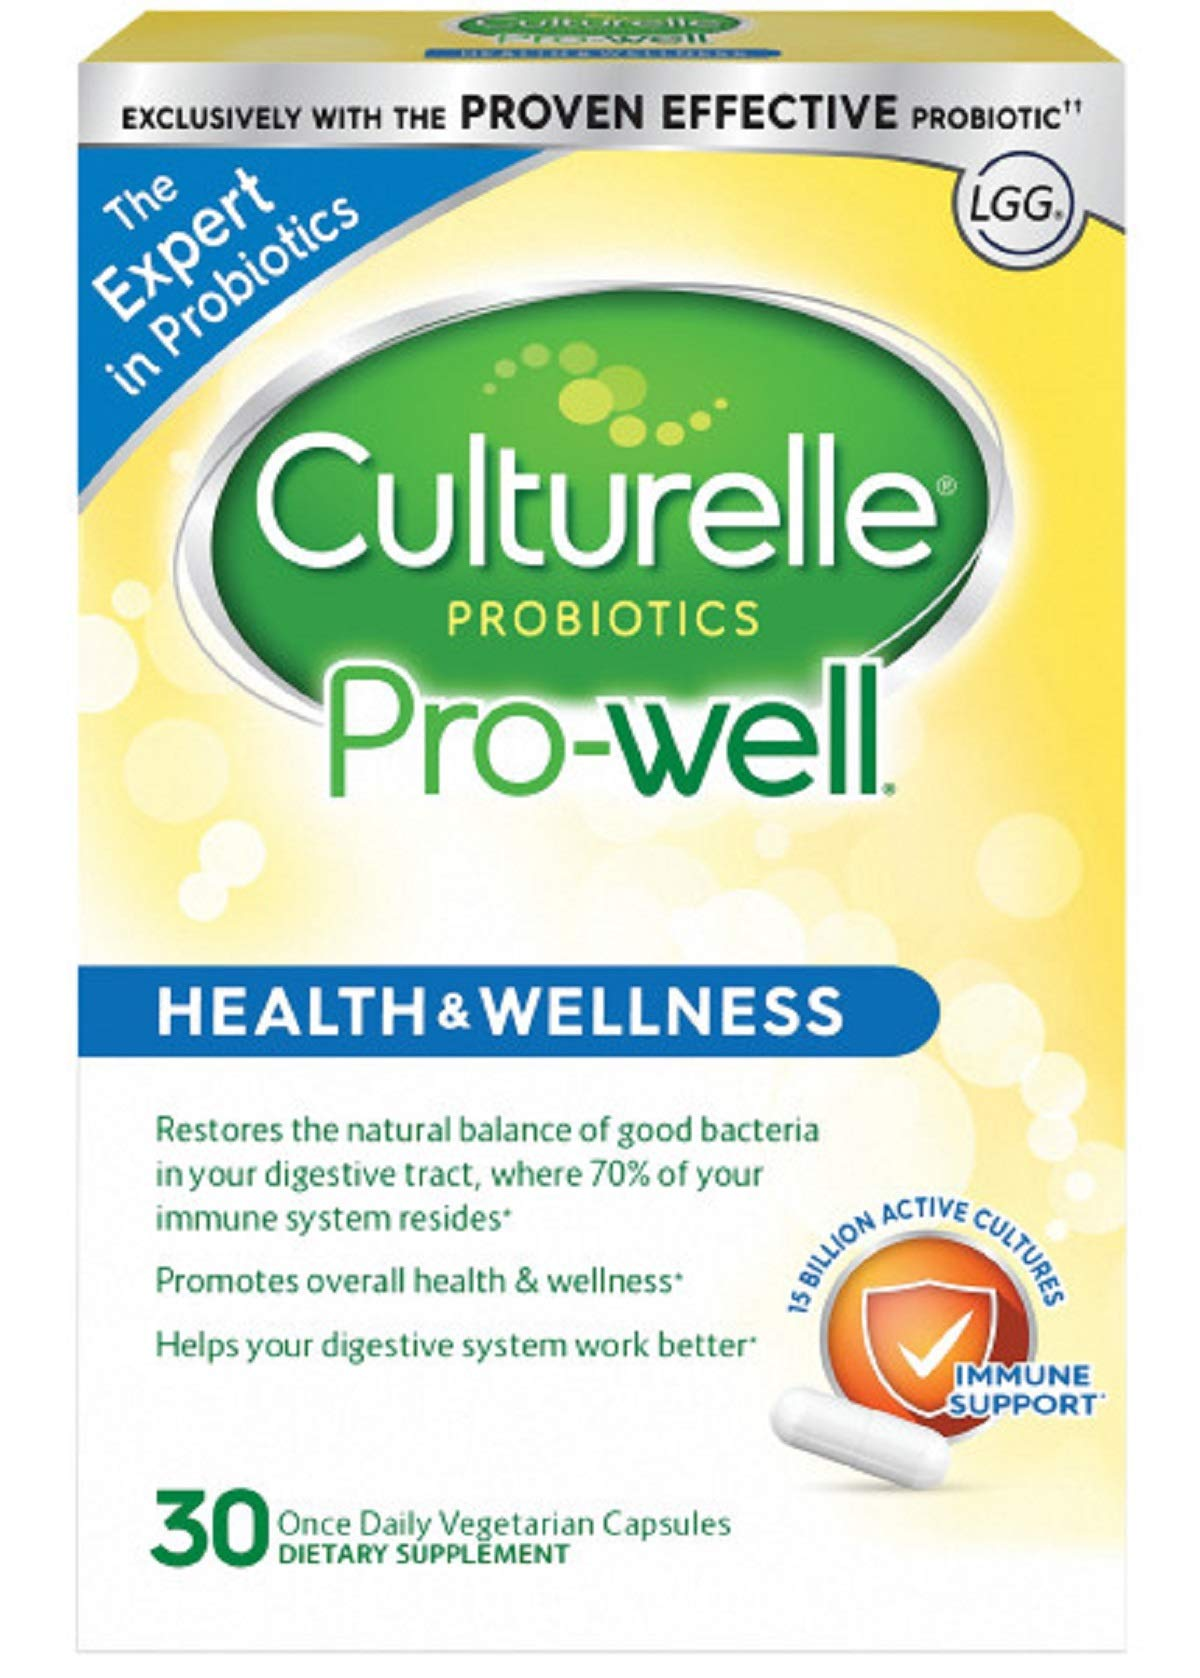 Culturelle Pro-Well Health & Wellness Daily Probiotic Dietary Supplement   Restores Natural Balance of Good Bacteria in Digestive Tract*   With the proven effective Probiotic   30 Vegetarian Capsules by Culturelle